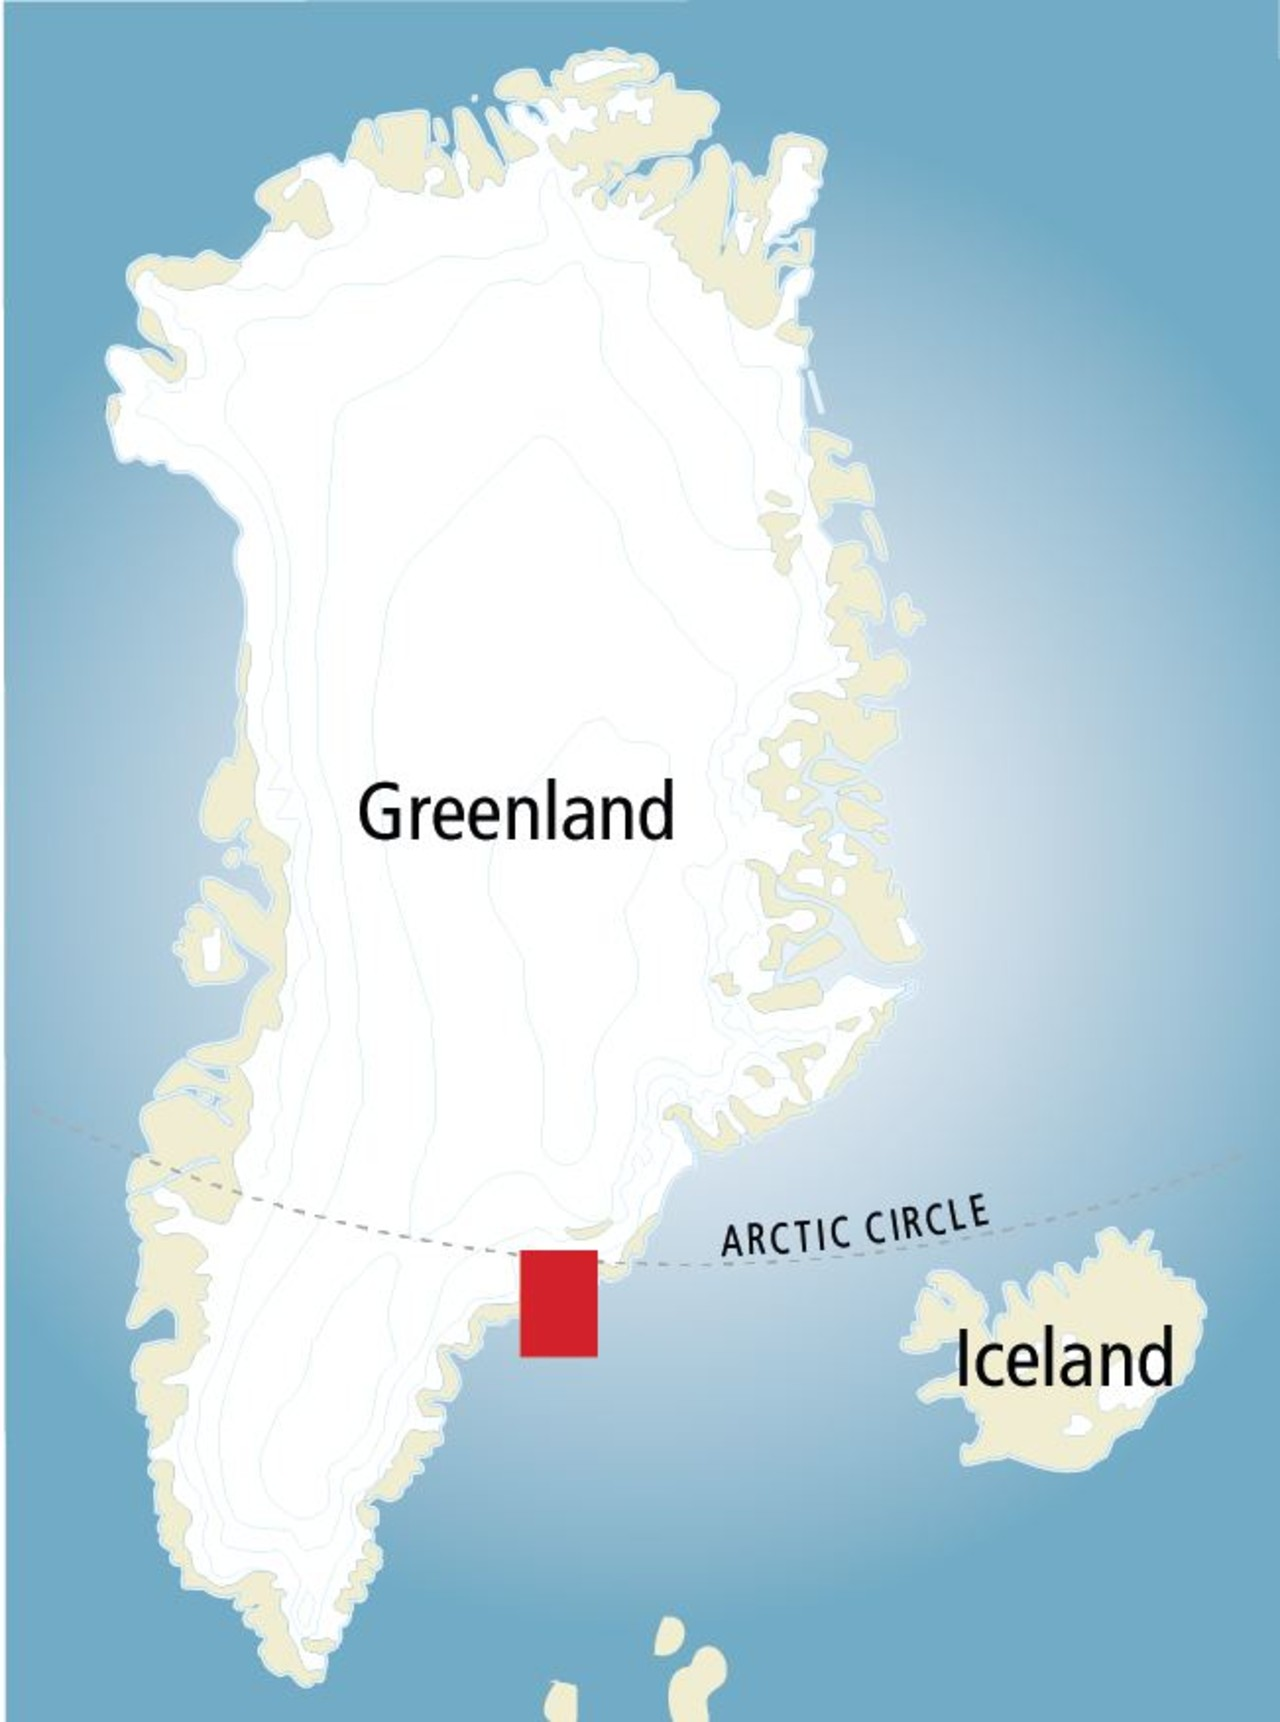 A map of Greenland showing where the Arctic Circle  crosses the country